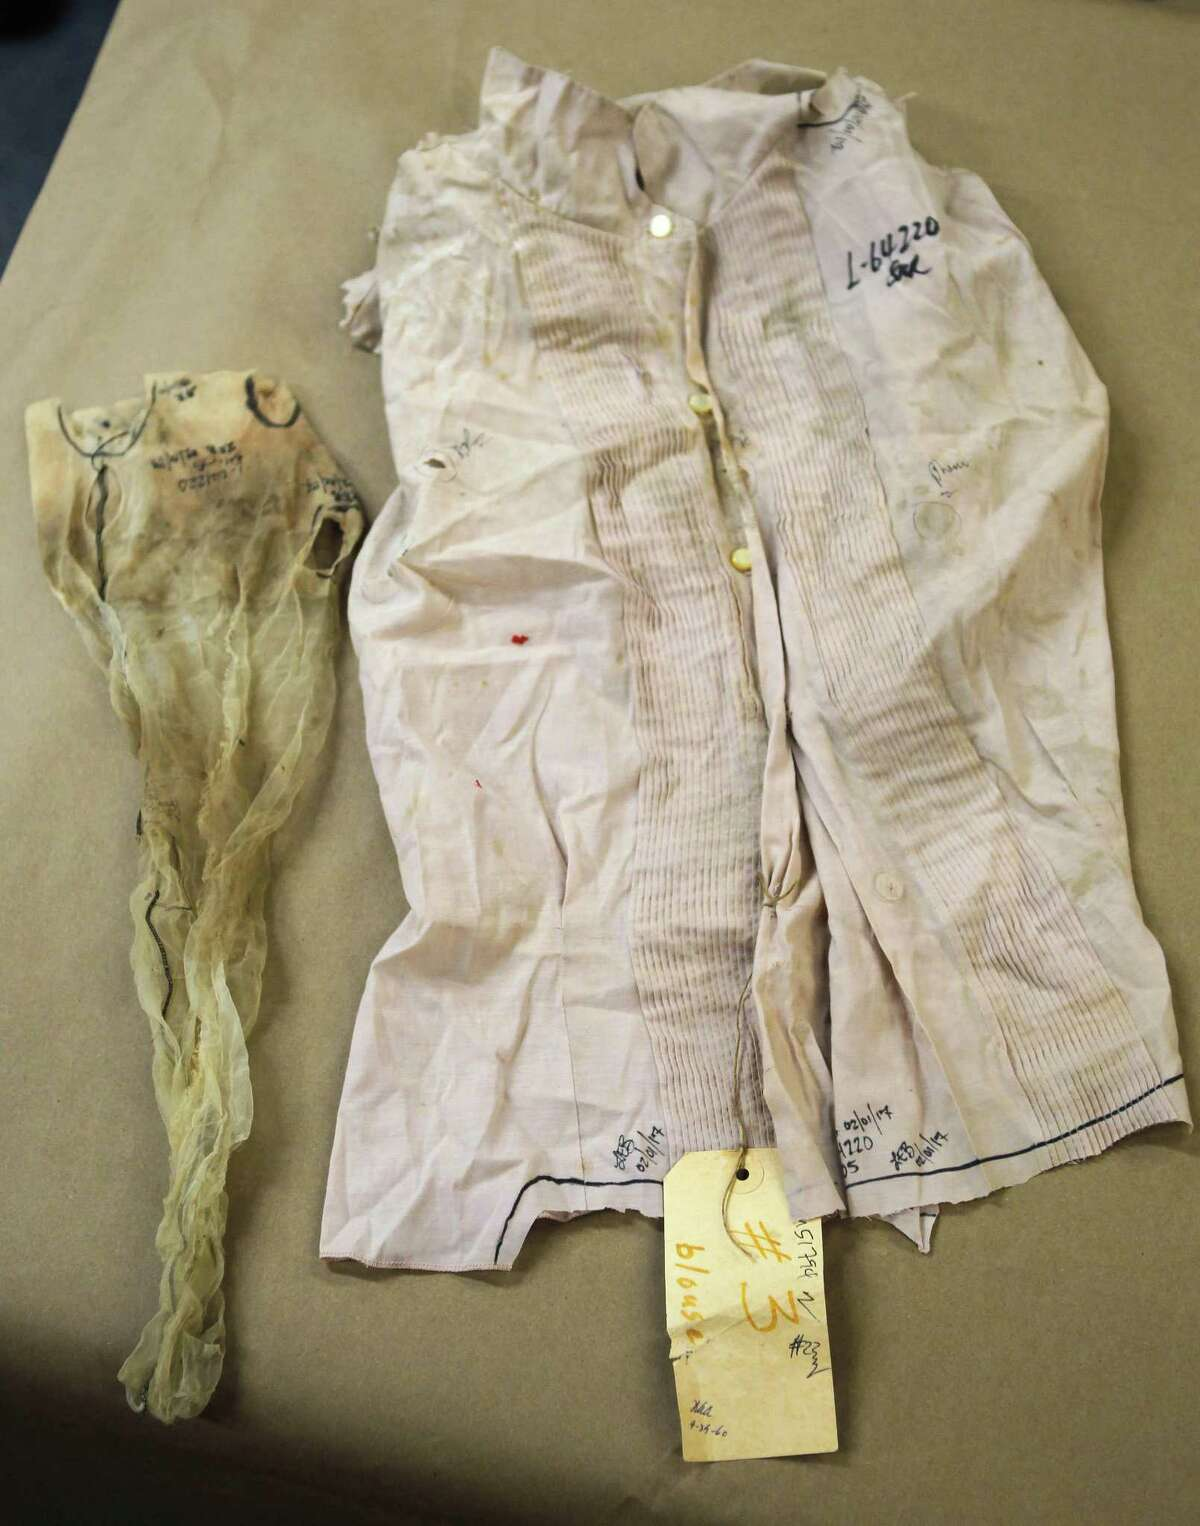 The blouse and a stocking worn by Irene Garza when her body was discovered in a canal on April 21, 1960 in McAllen. The items have been entered into evidence in John Bernard Feit's trial for the 1960 murder of Irene Garza in the 92nd state District Court at the Hidalgo County Courthouse in Edinburg. (Nathan Lambrecht/The Monitor/Pool)